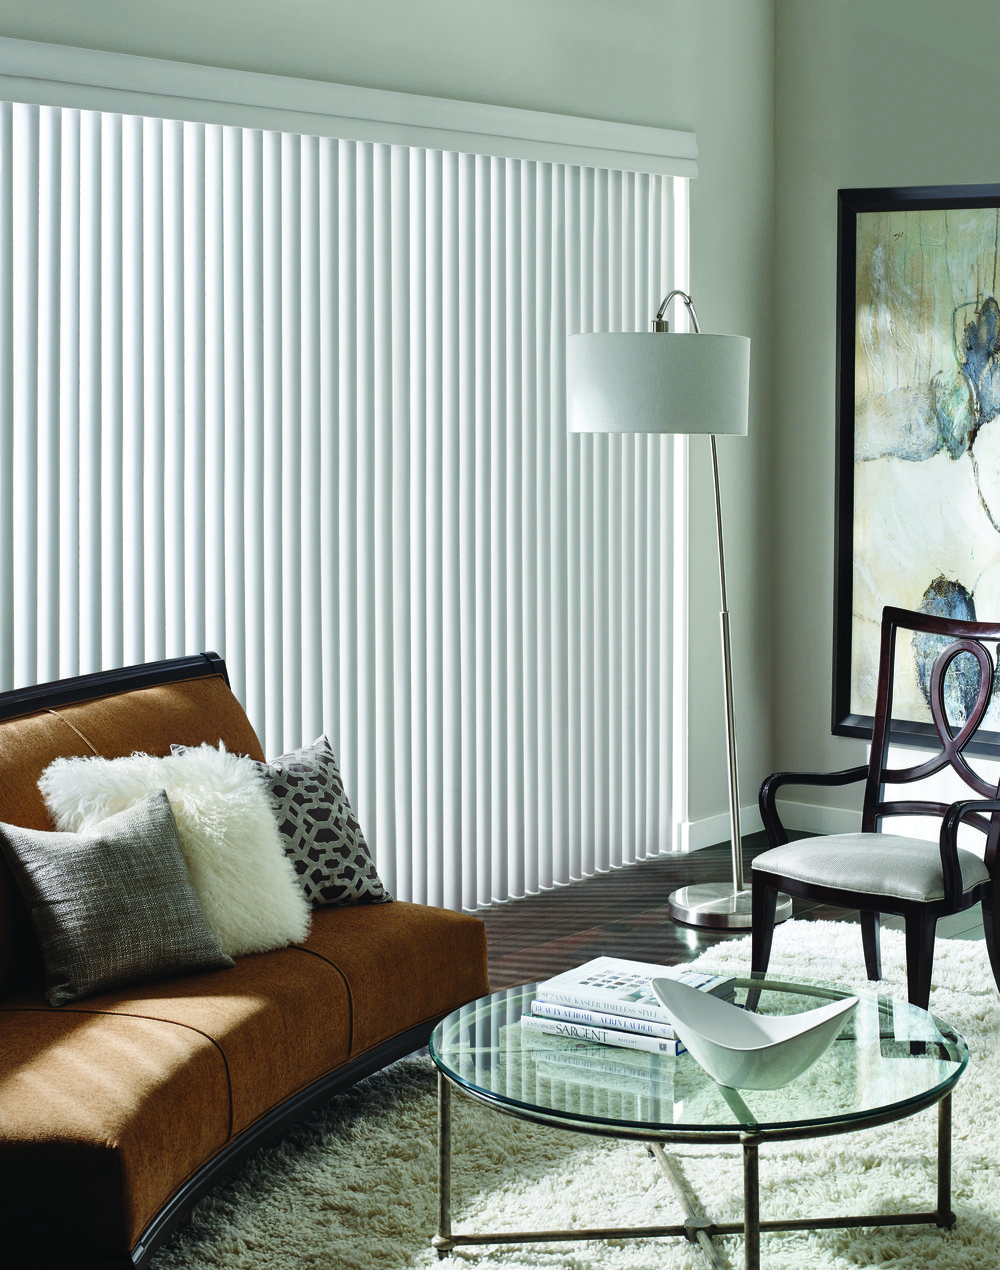 1. Vertical Blinds - An original in covering sliding patio doors are Verticals and they just keep transforming into something new as you'll see - Next! Pros:  PVC verticals are easy-to-clean, easier-to-operate, and great for larger windows.  A great choice for modern interiors. Cons:  We are frequently asked: